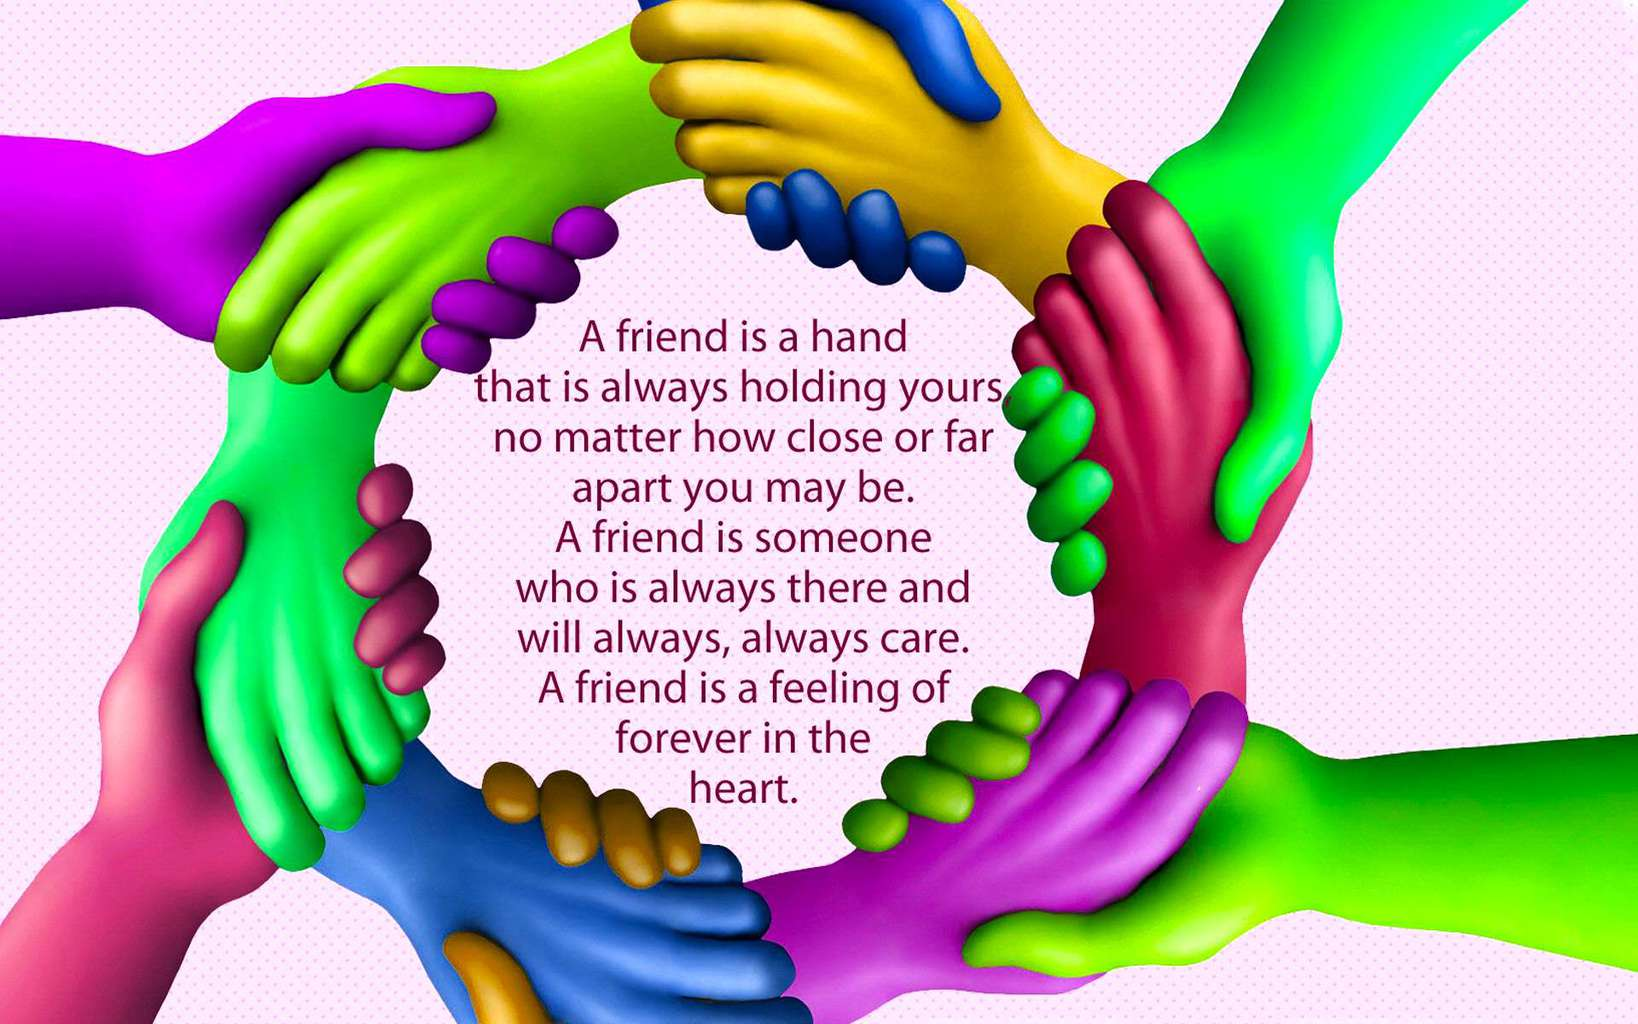 Good Morning Friends Wallpaper With Quotes Friendship Hands Image Wallpaper Wallpapers